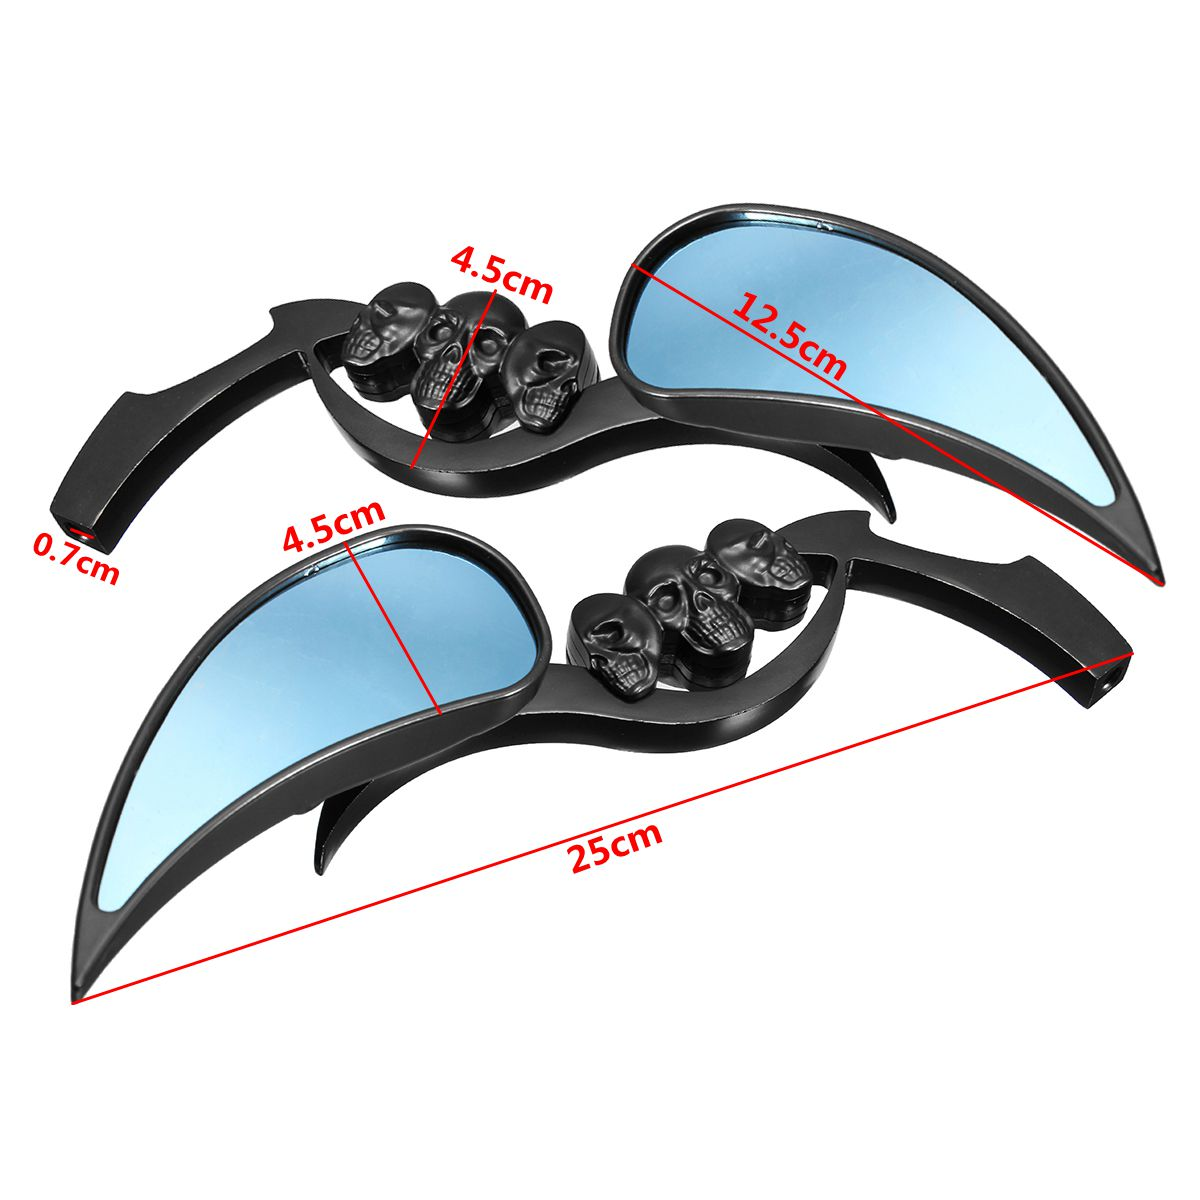 Universal Aluminum Skull Flame Rearview Wing Mirrors For Harley Motorcycle